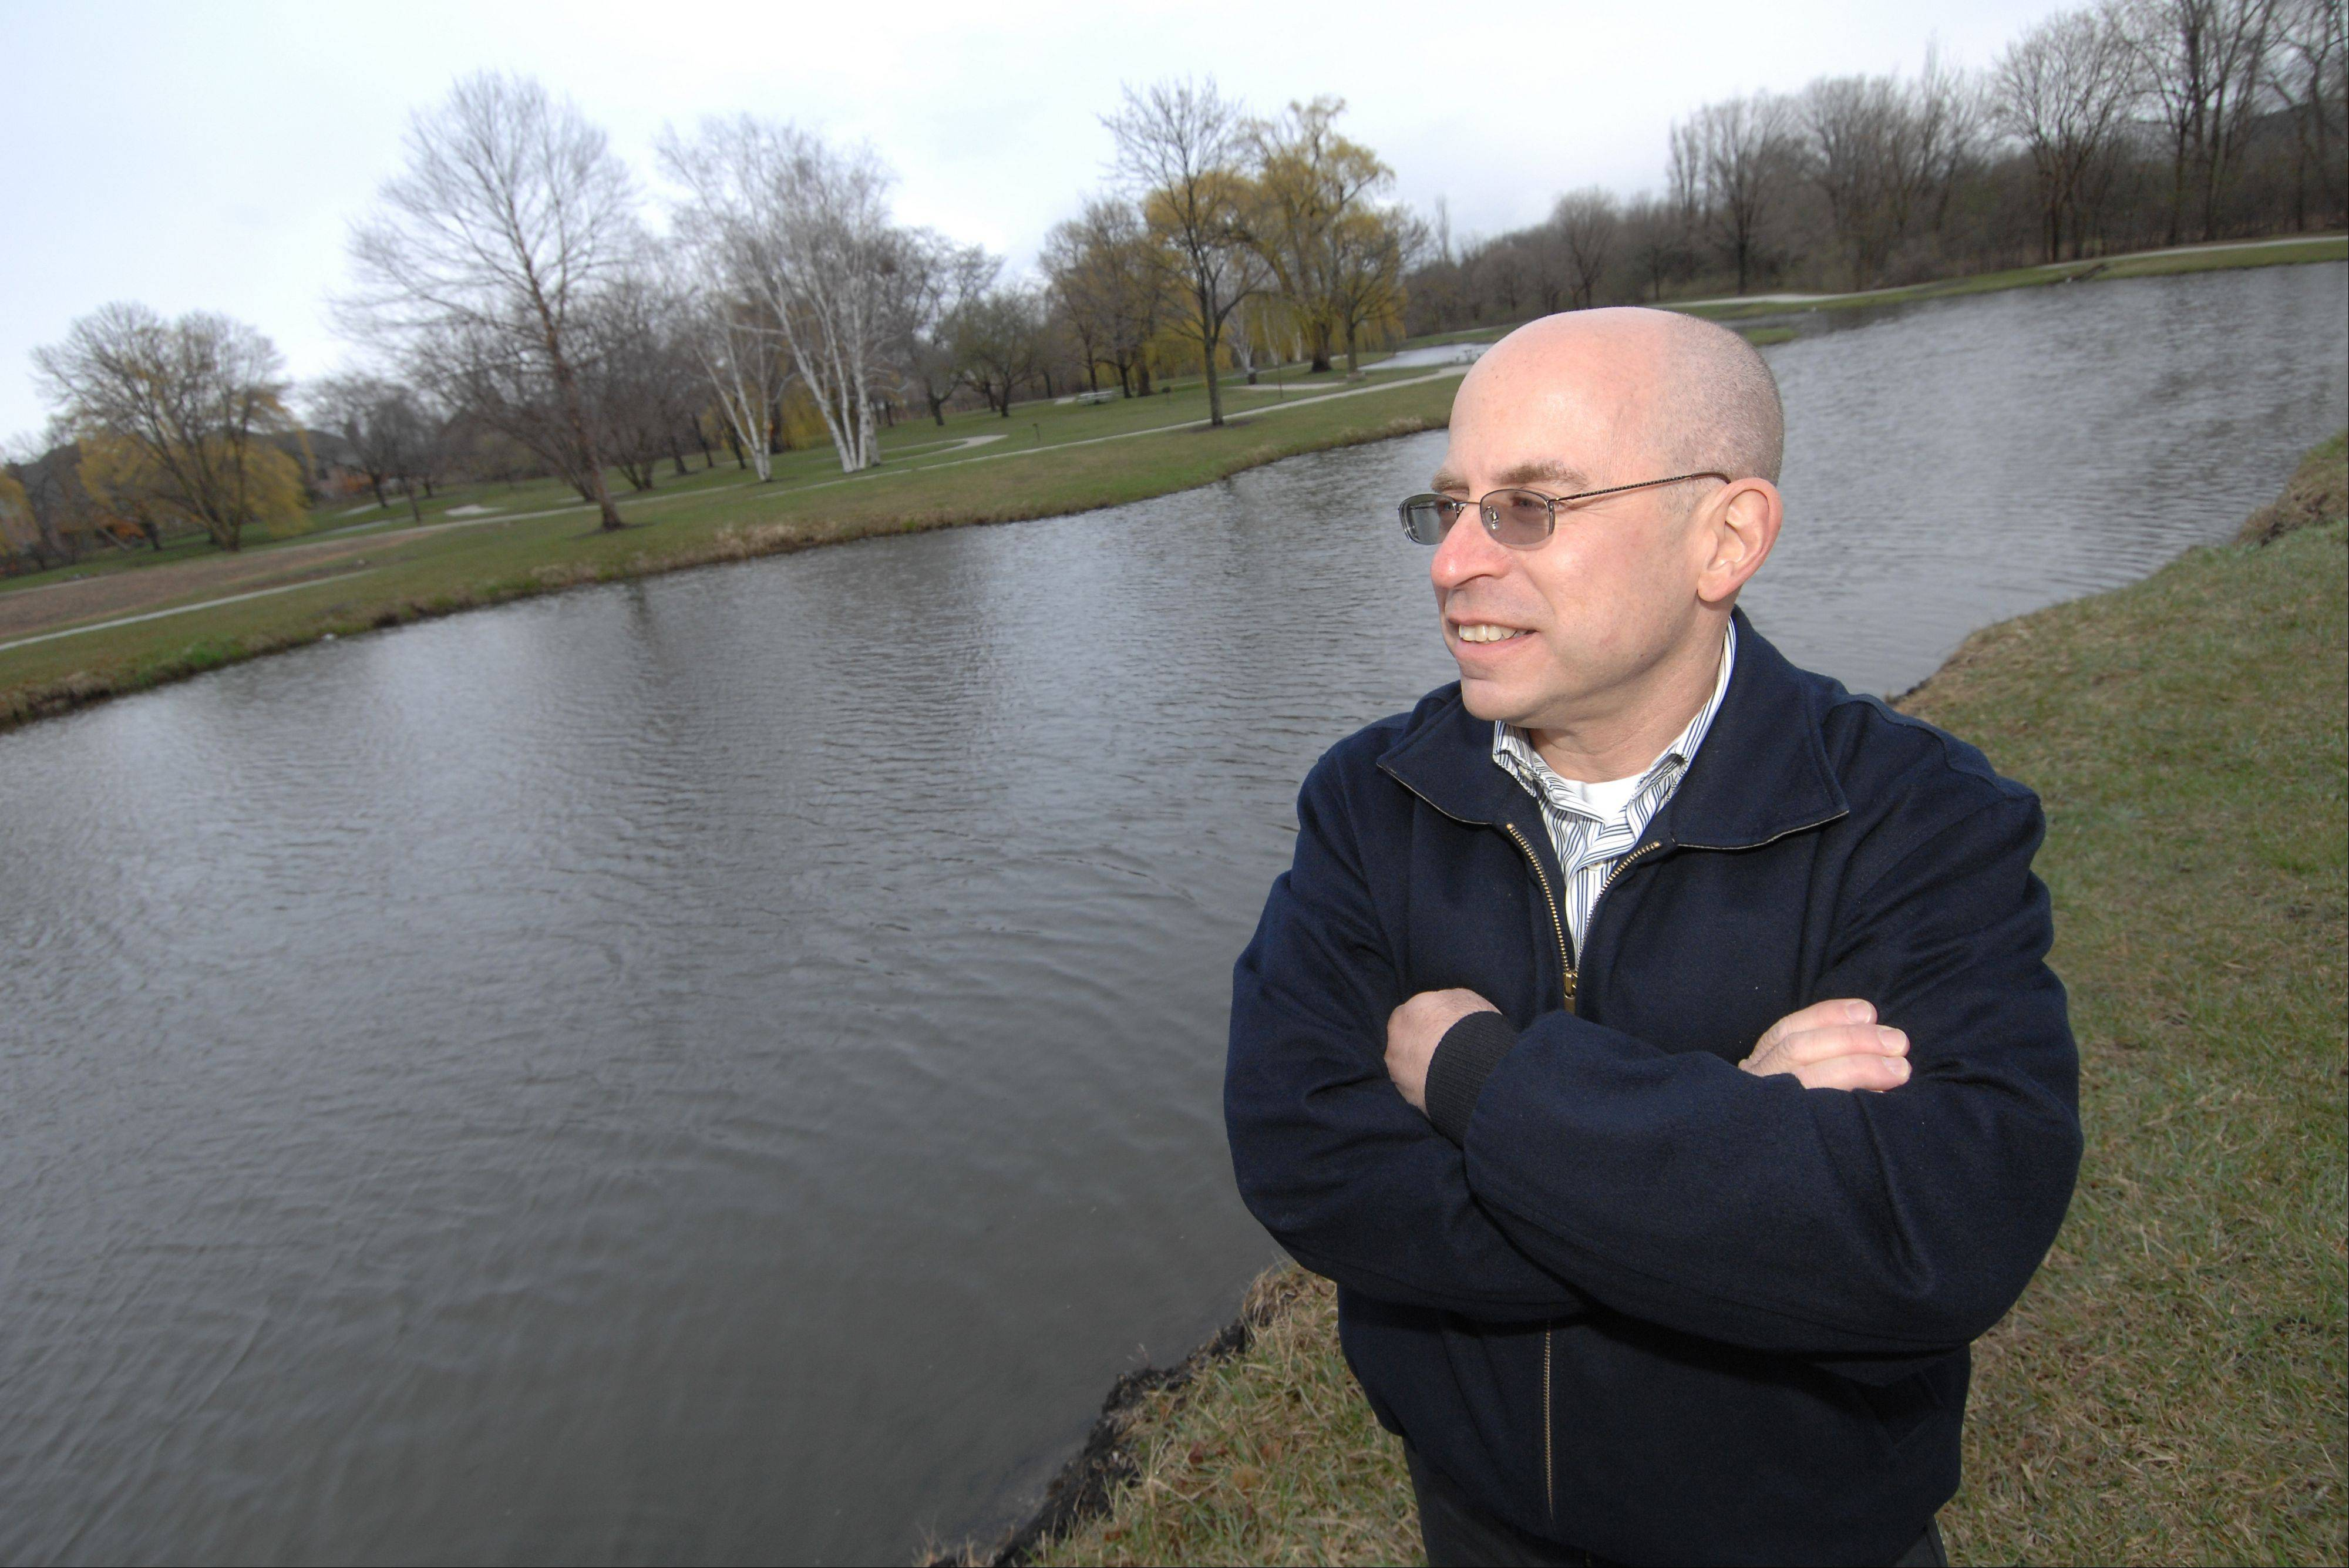 Glen Ellyn Village President Mark Pfefferman won't seek a second term -- a village custom -- though he admits some supporters urged him to buck the trend.